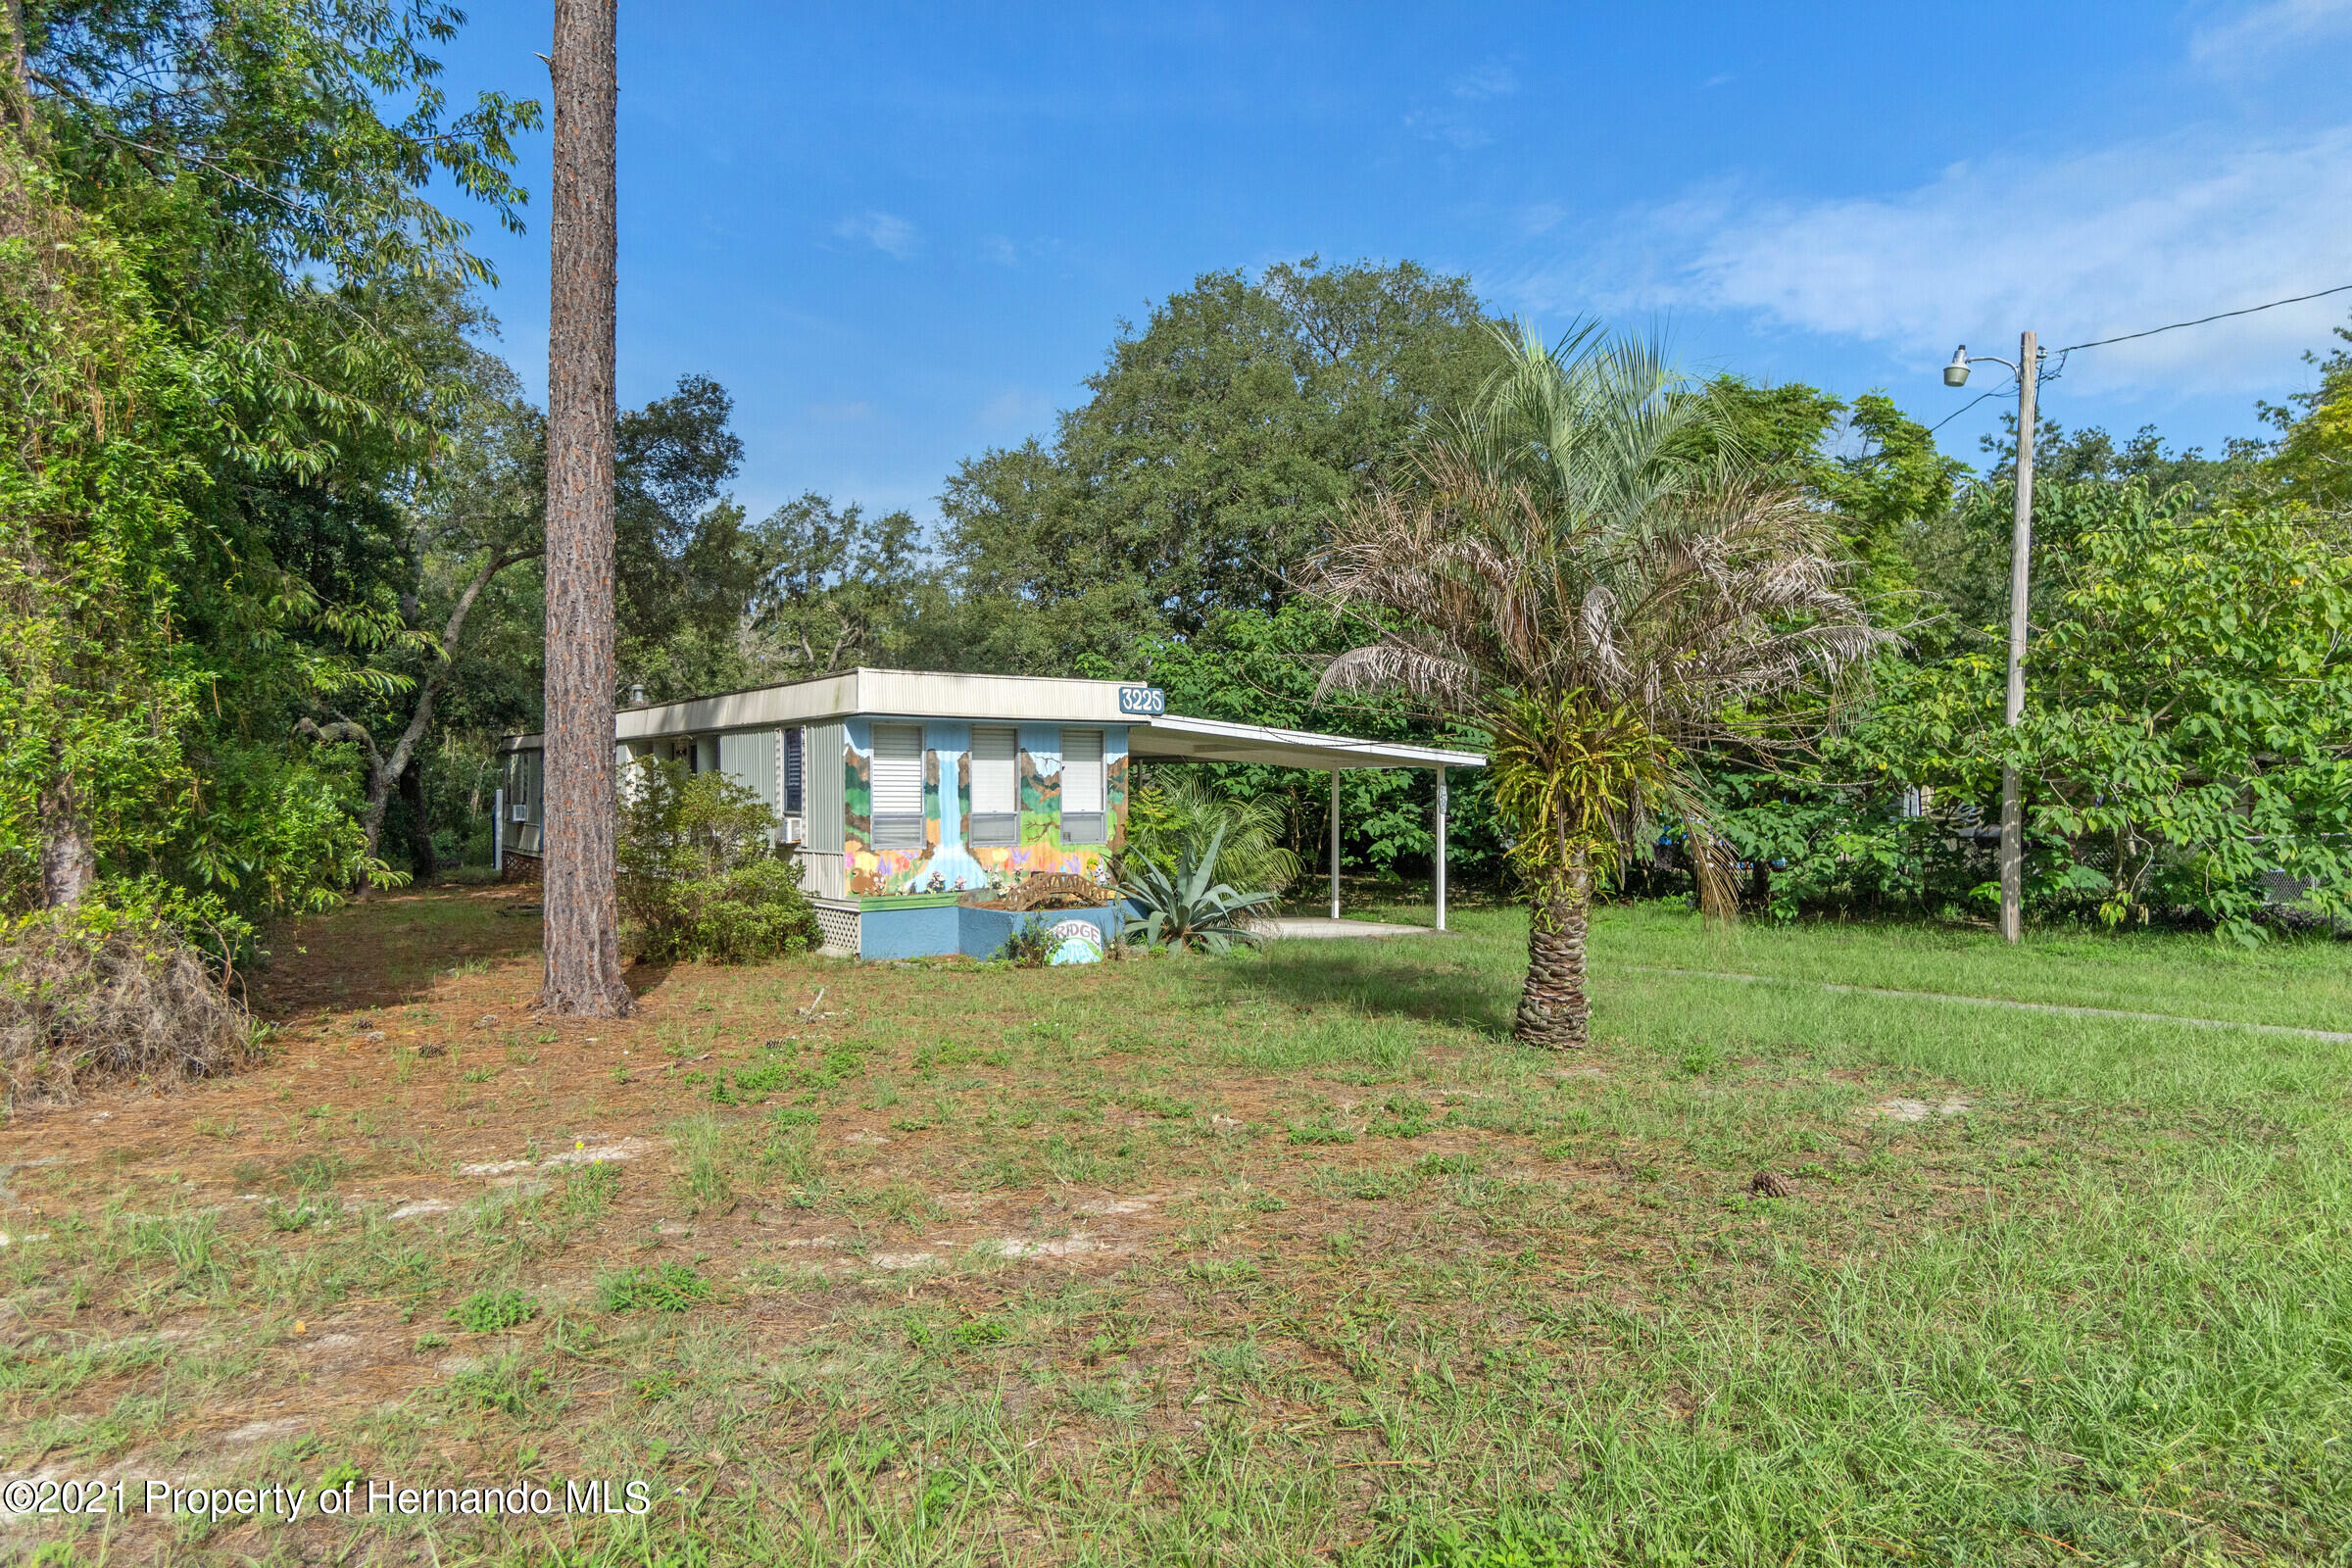 Details for 3225 Painters Street, Spring Hill, FL 34606